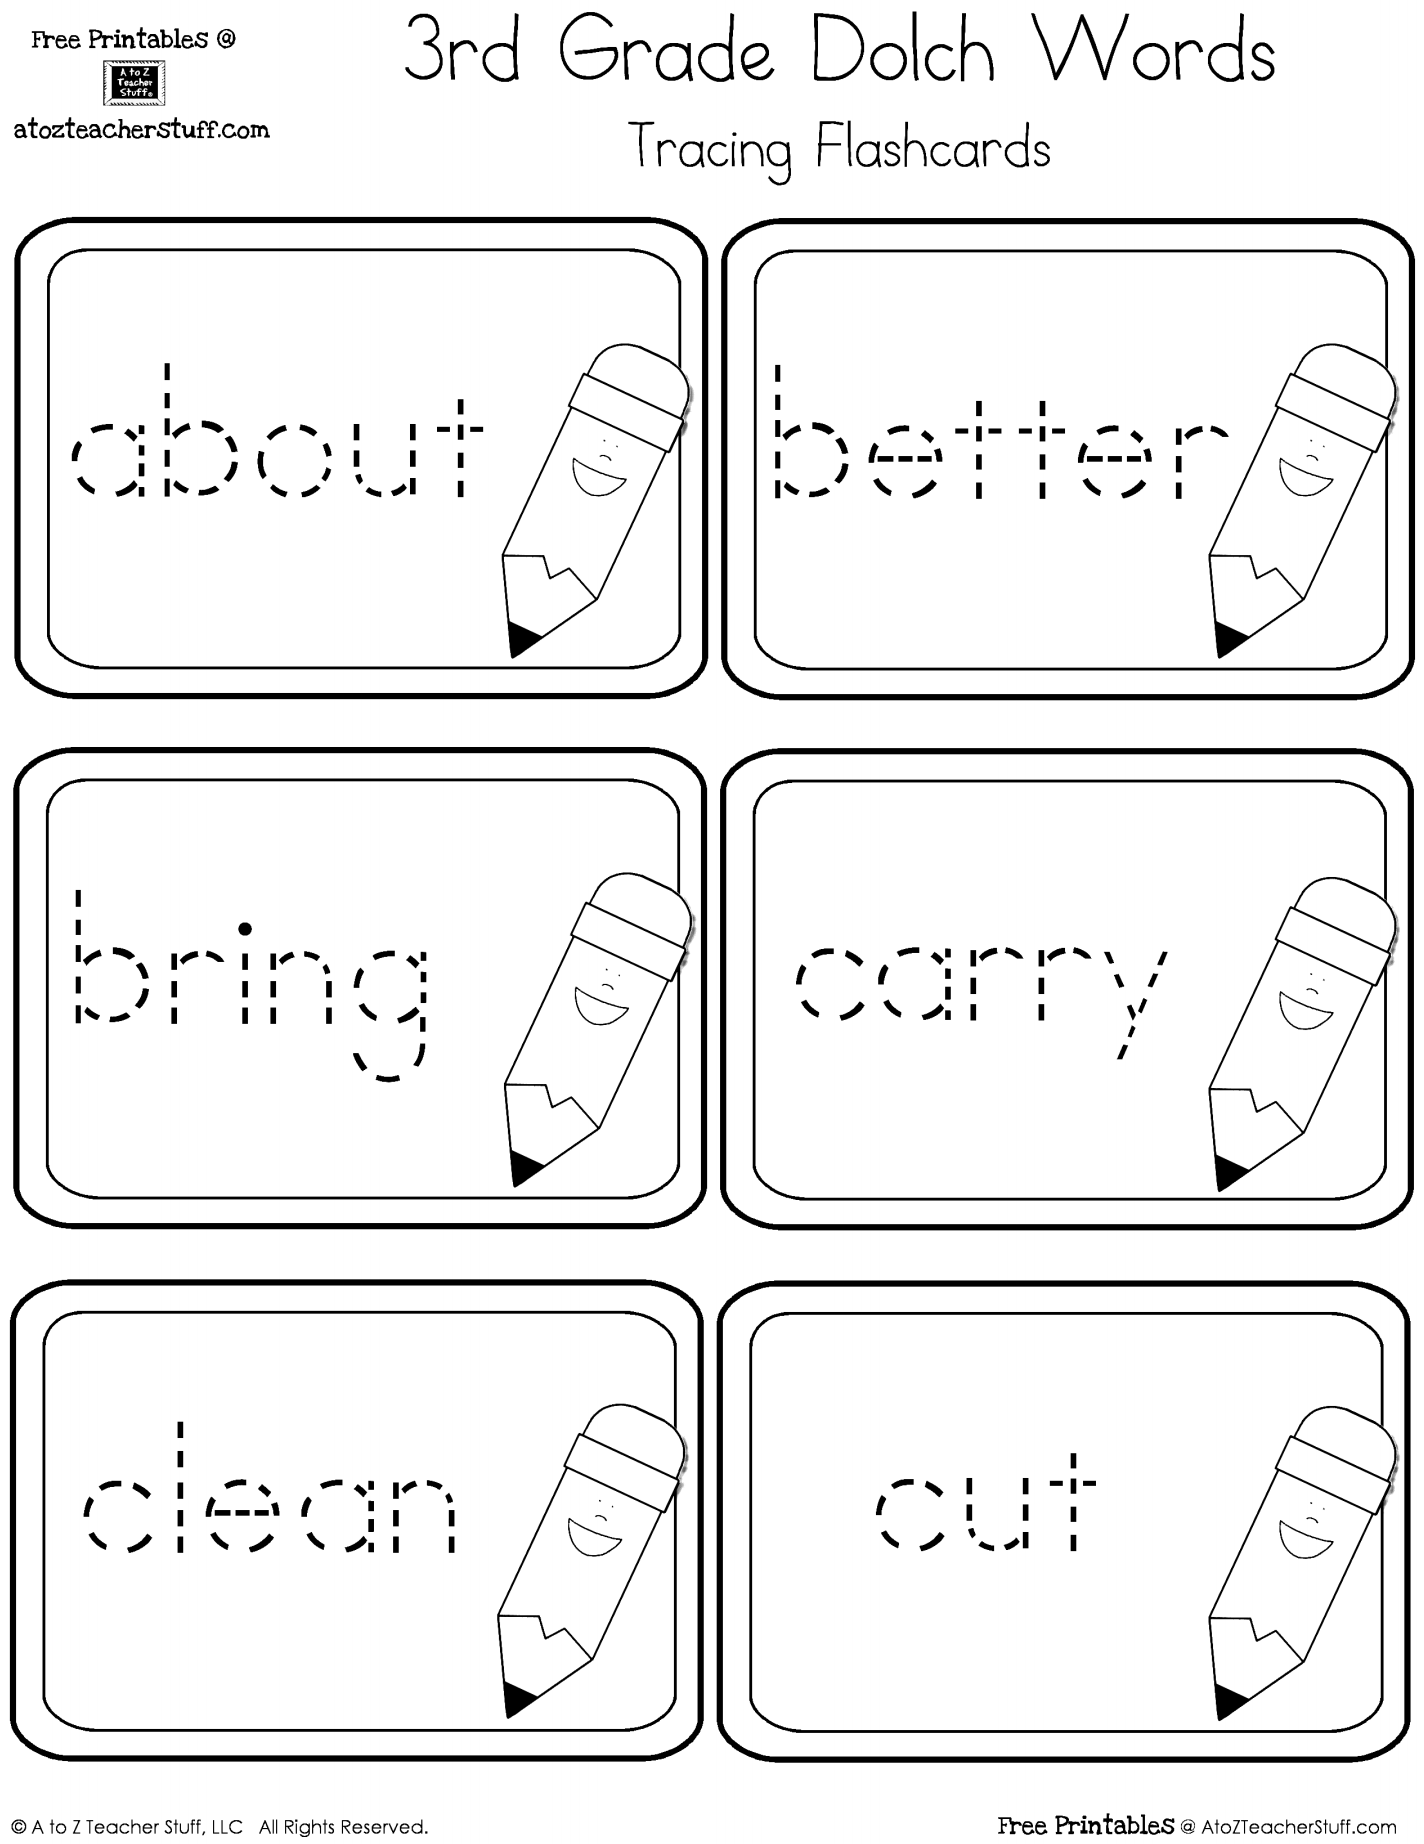 Worksheets 1st Grade Sight Word Worksheets third grade dolch sight words tracing flashcards a to z teacher 3rd cards free printables